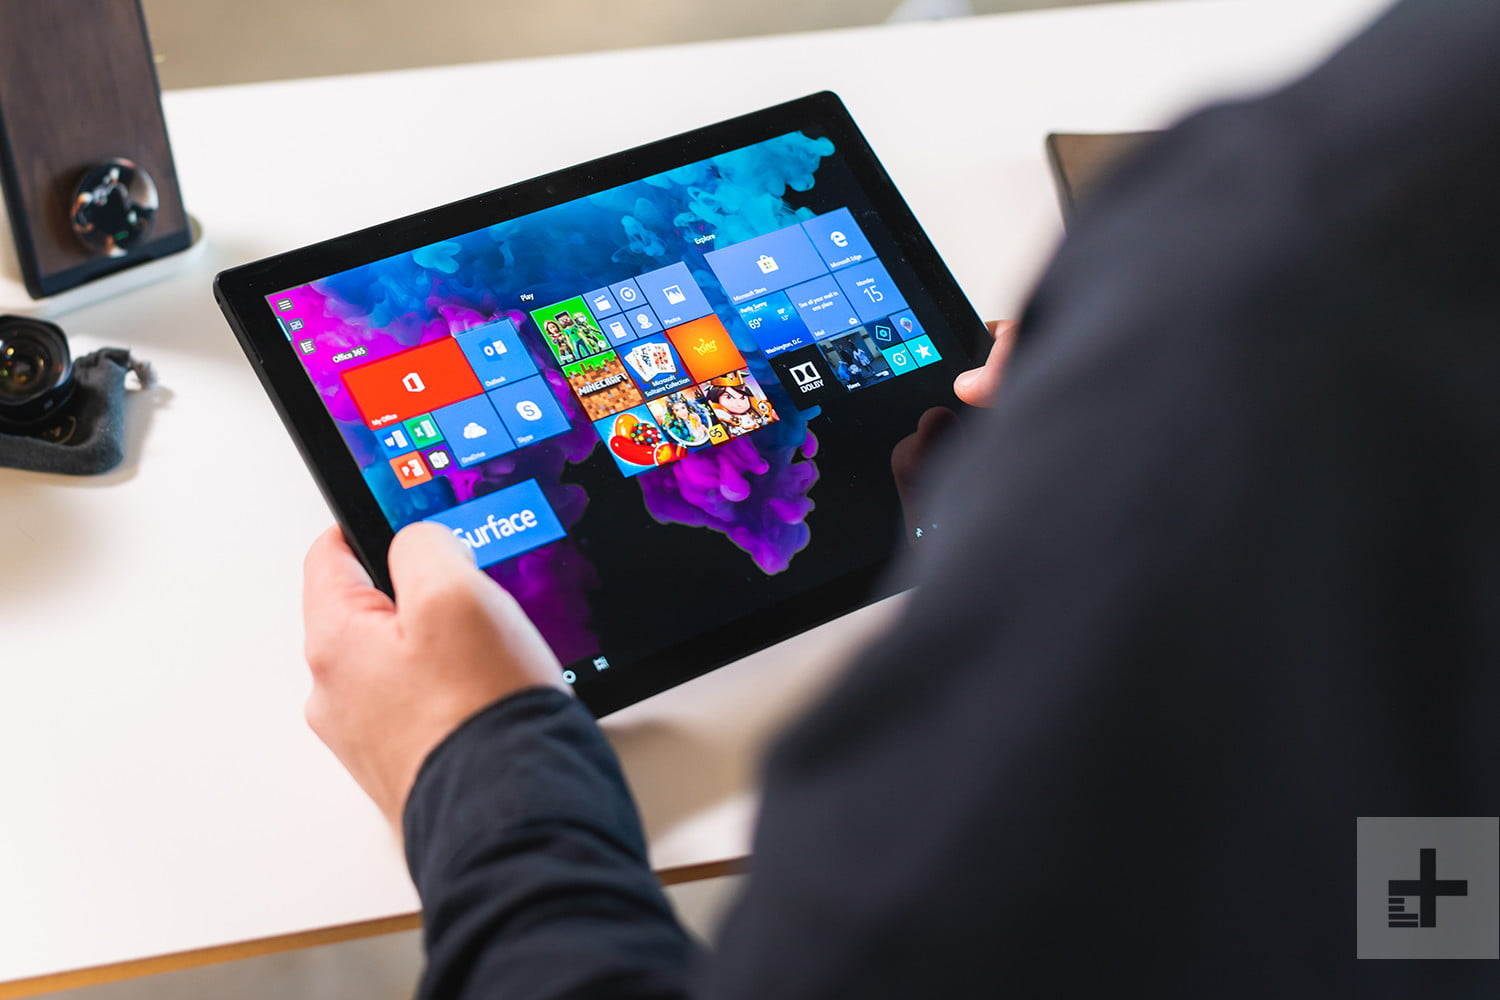 microsoft surface pro 3 tablet manual